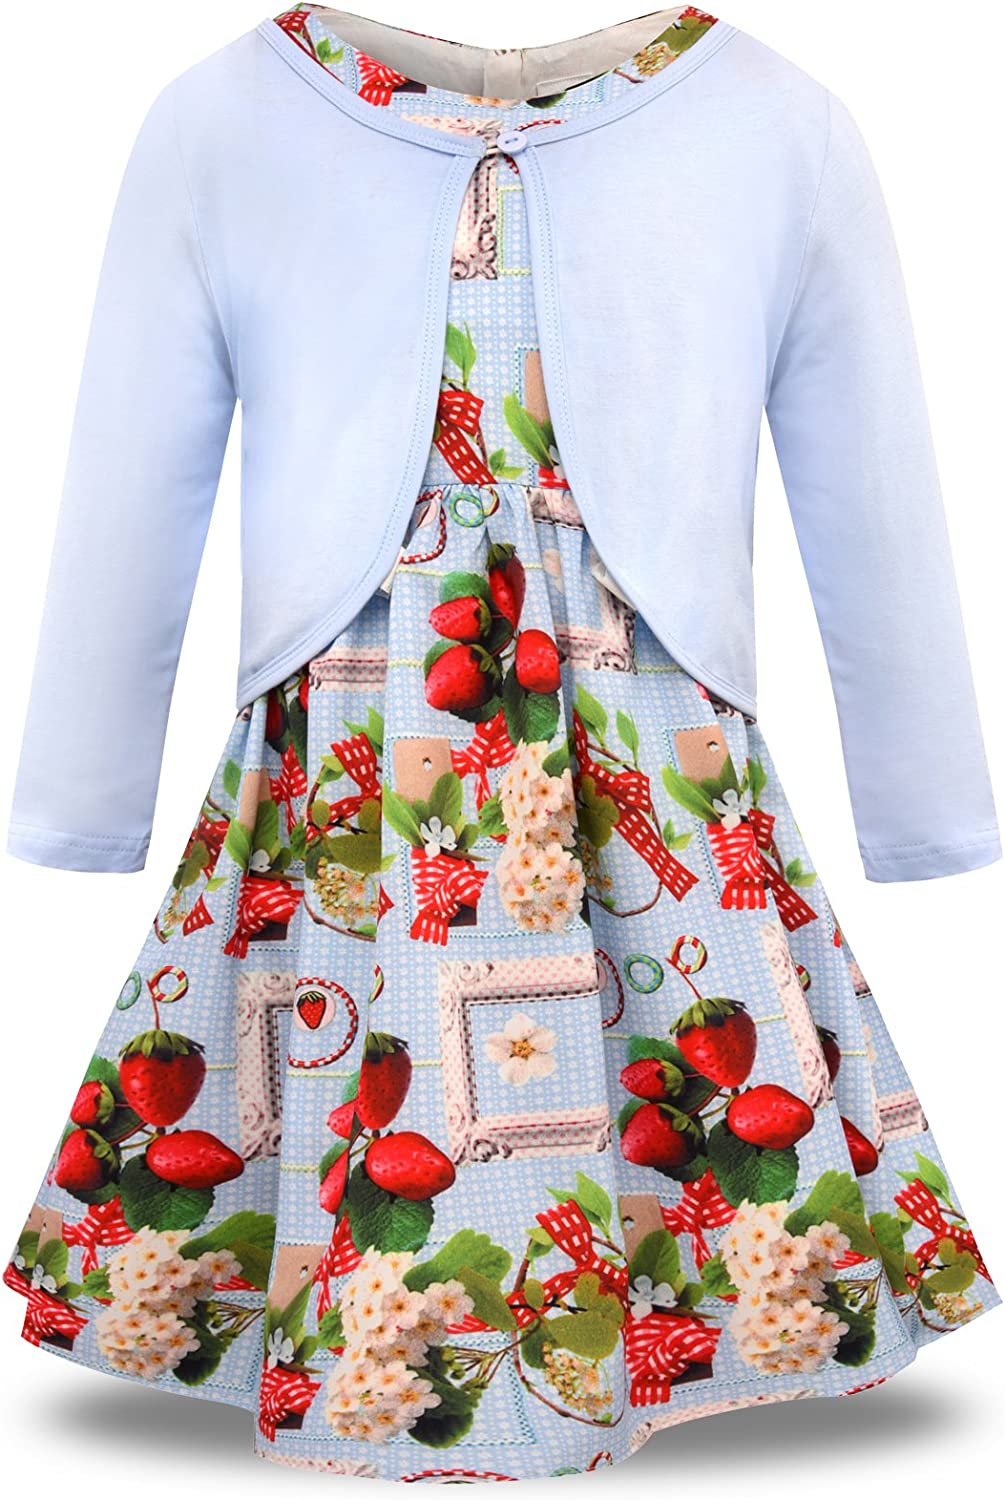 Bonny Billy Little Girls' Clothing Sets Flower Dress and Solid Cardigan 2 PCS Outfits